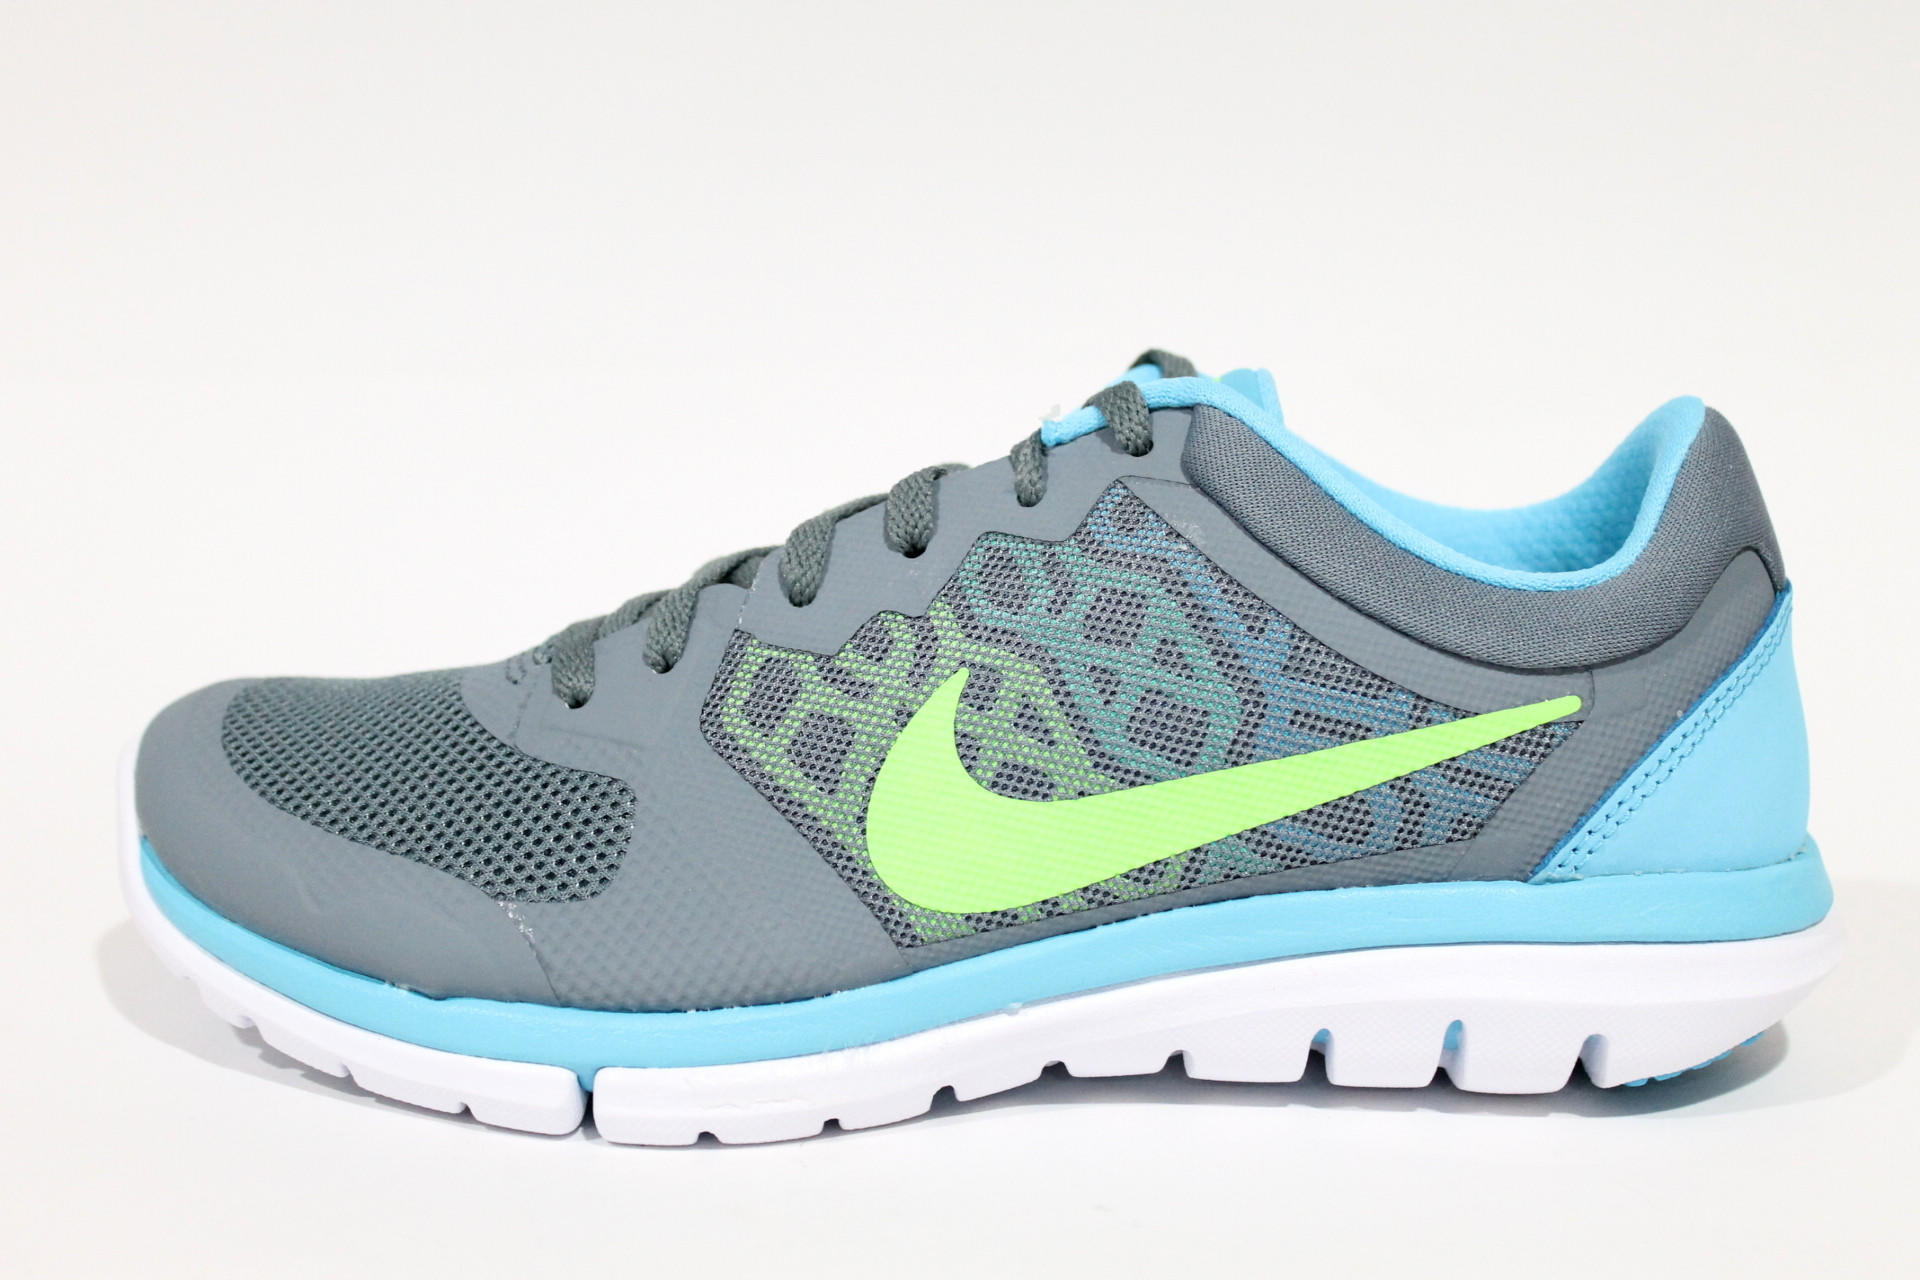 Nike Women s Flex 2015 Run Grey Blue Lime Running Shoes 709021 400 98cce4dfd873